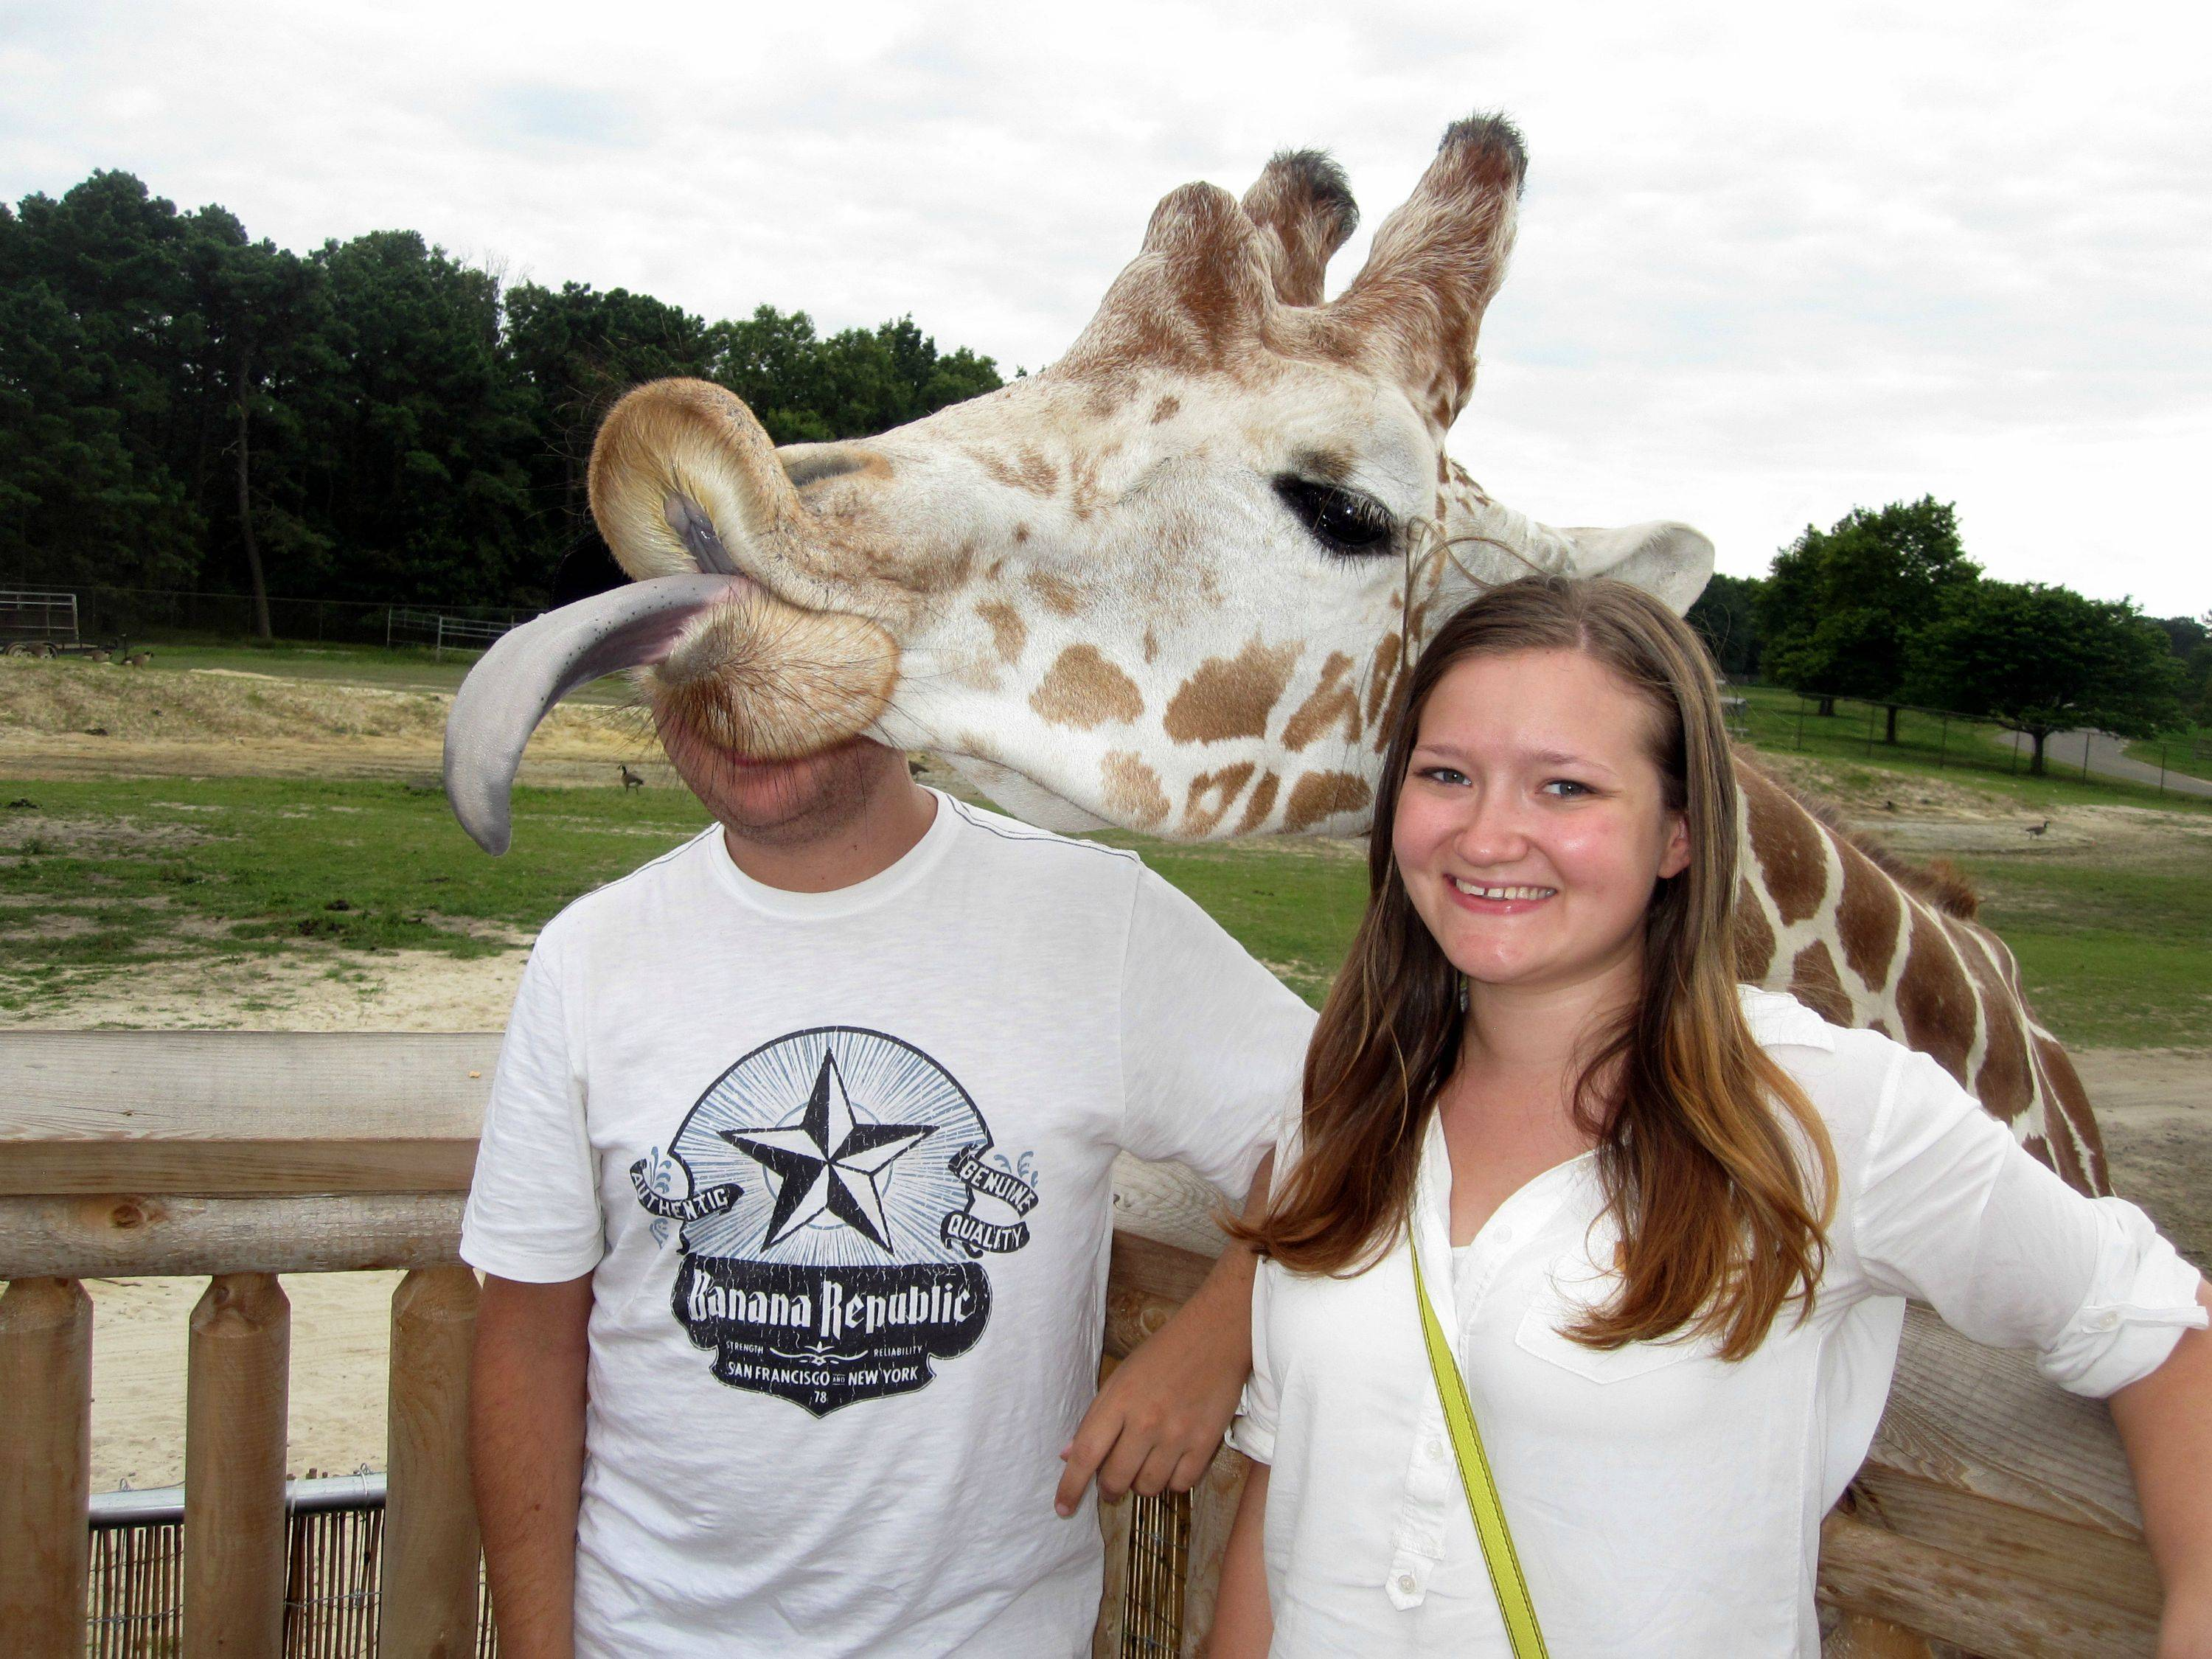 Photo of the Day: Photobombing Giraffe